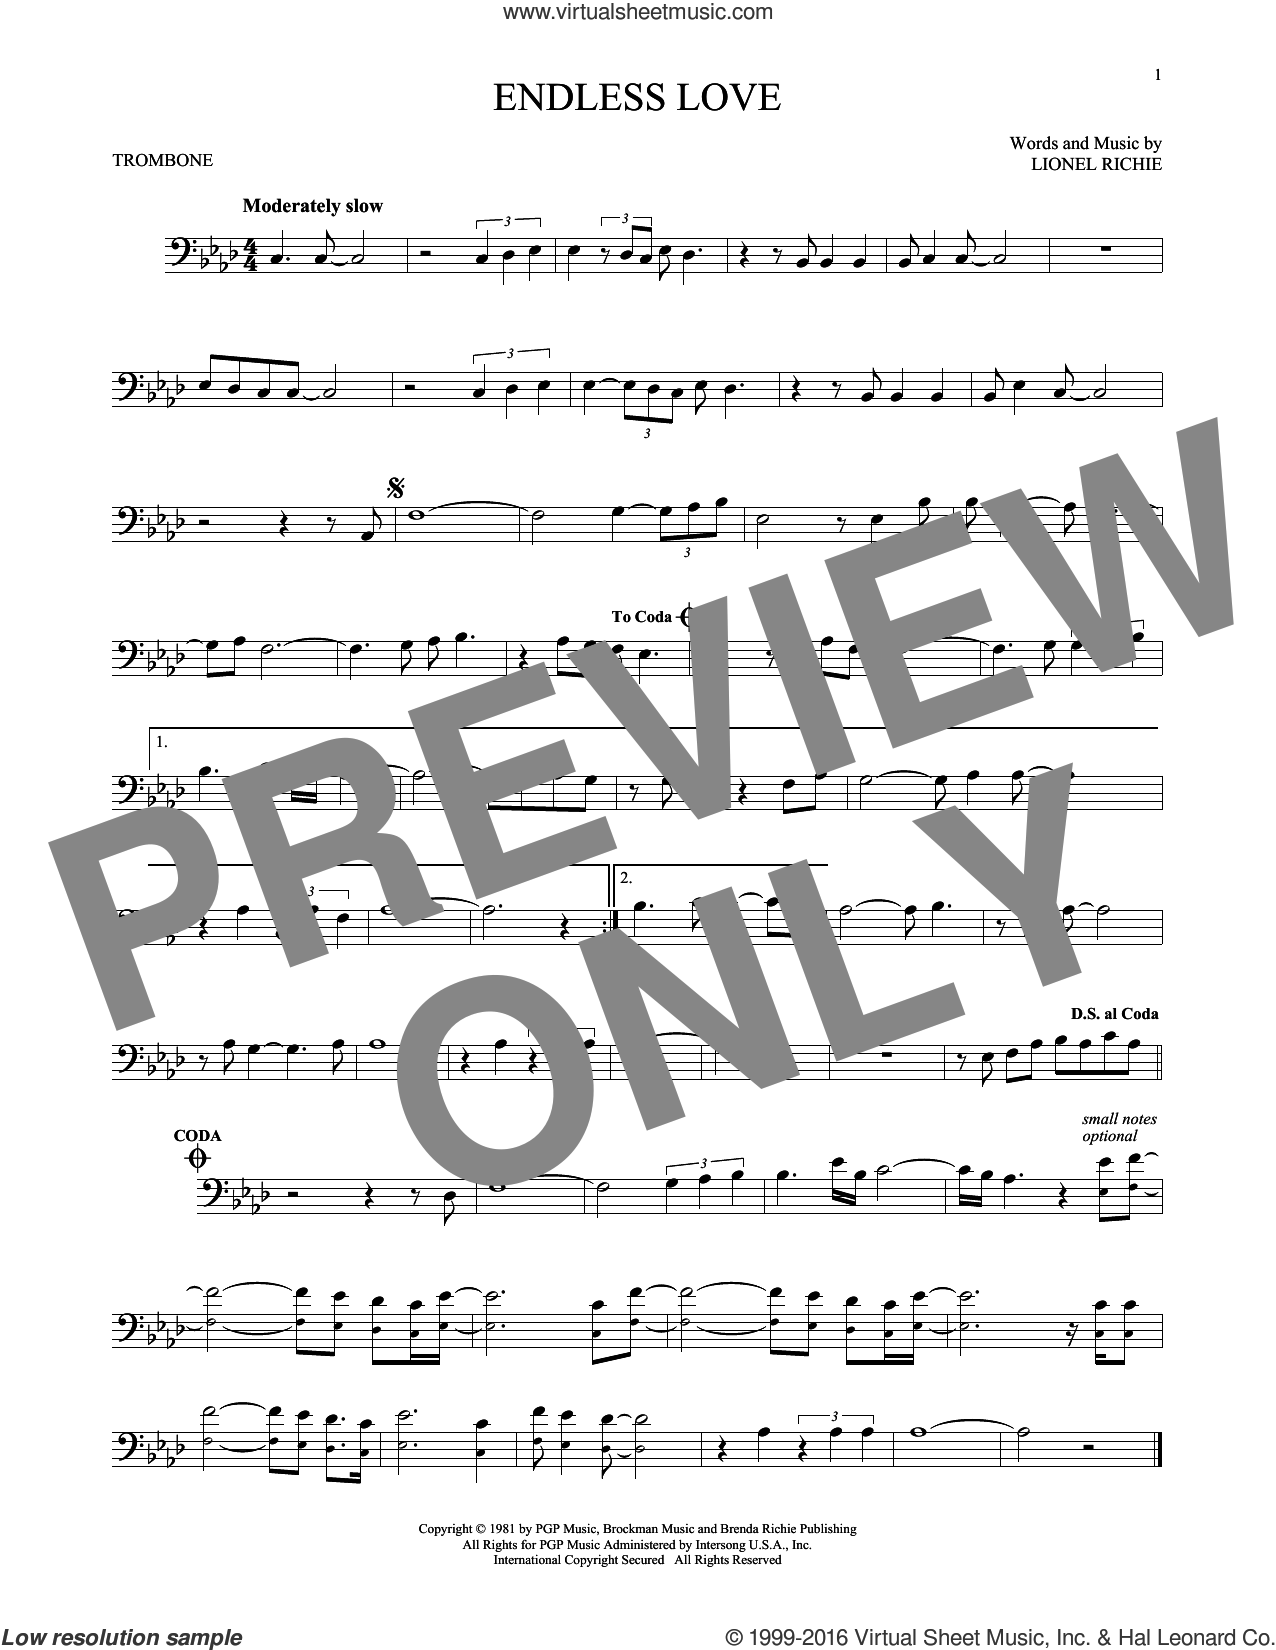 Endless Love sheet music for trombone solo by Diana Ross & Lionel Richie, intermediate. Score Image Preview.